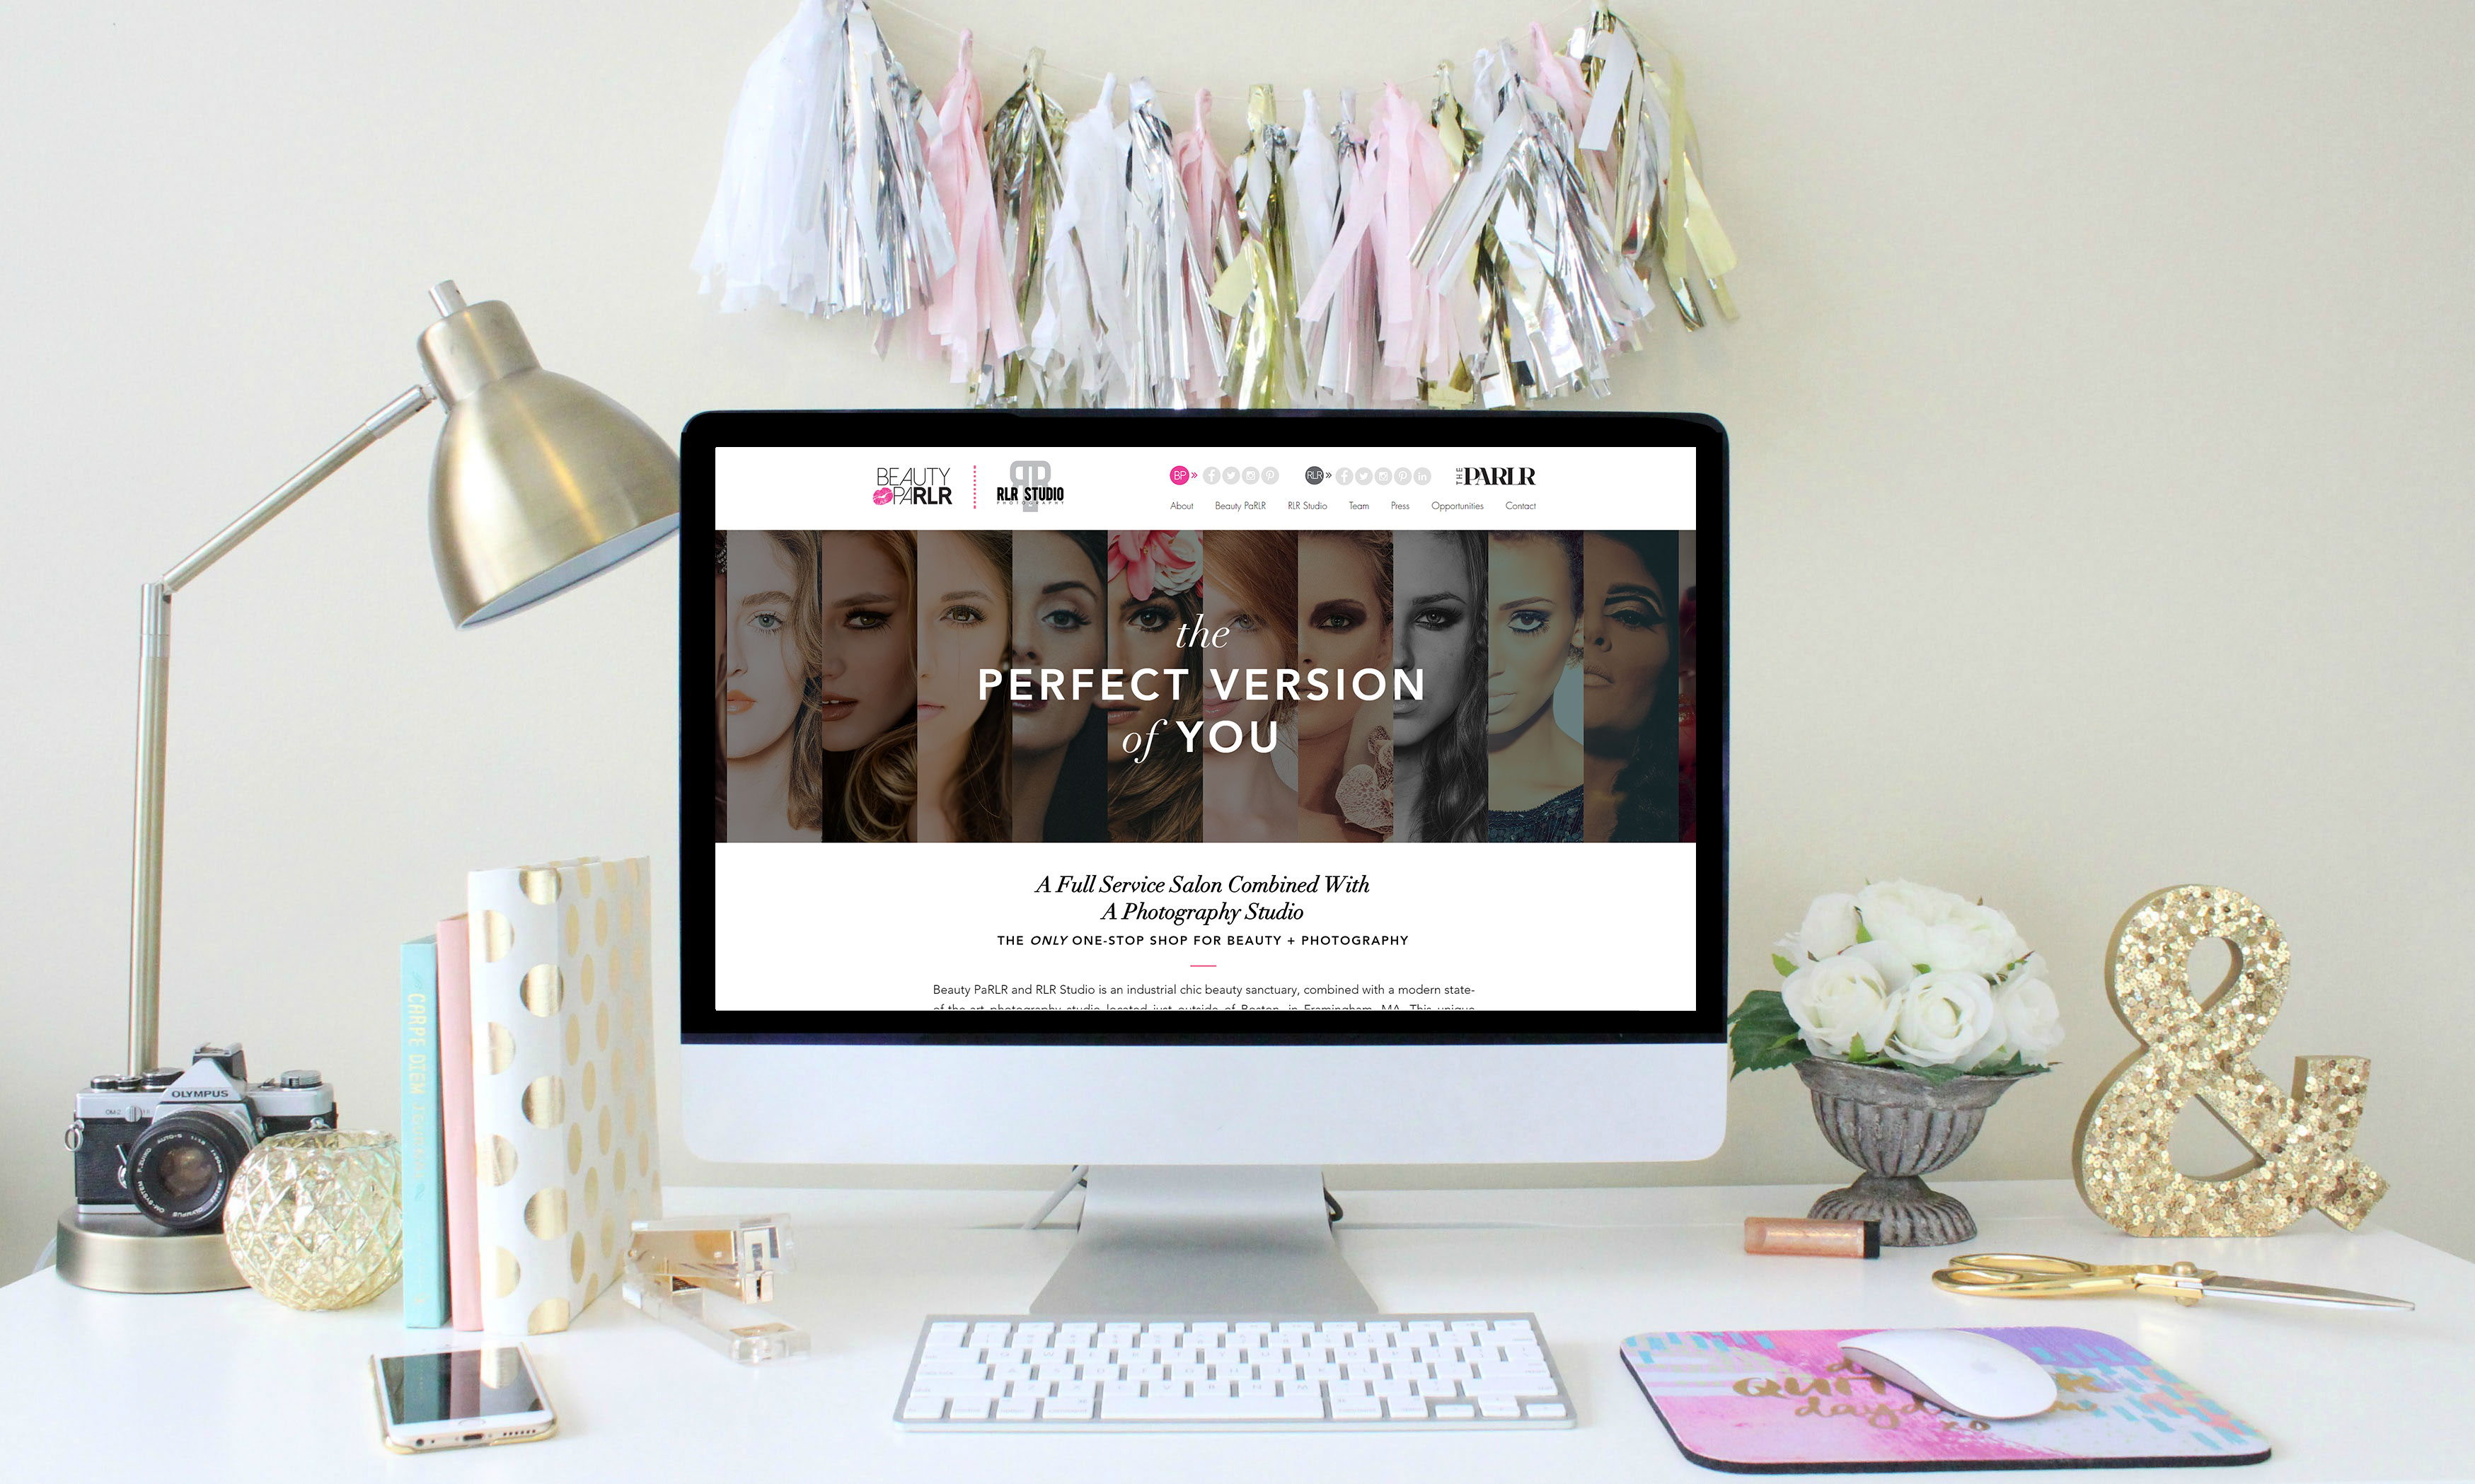 Sarah-Cas-Branding-and-Design-Beauty-Parlr-Website-Design